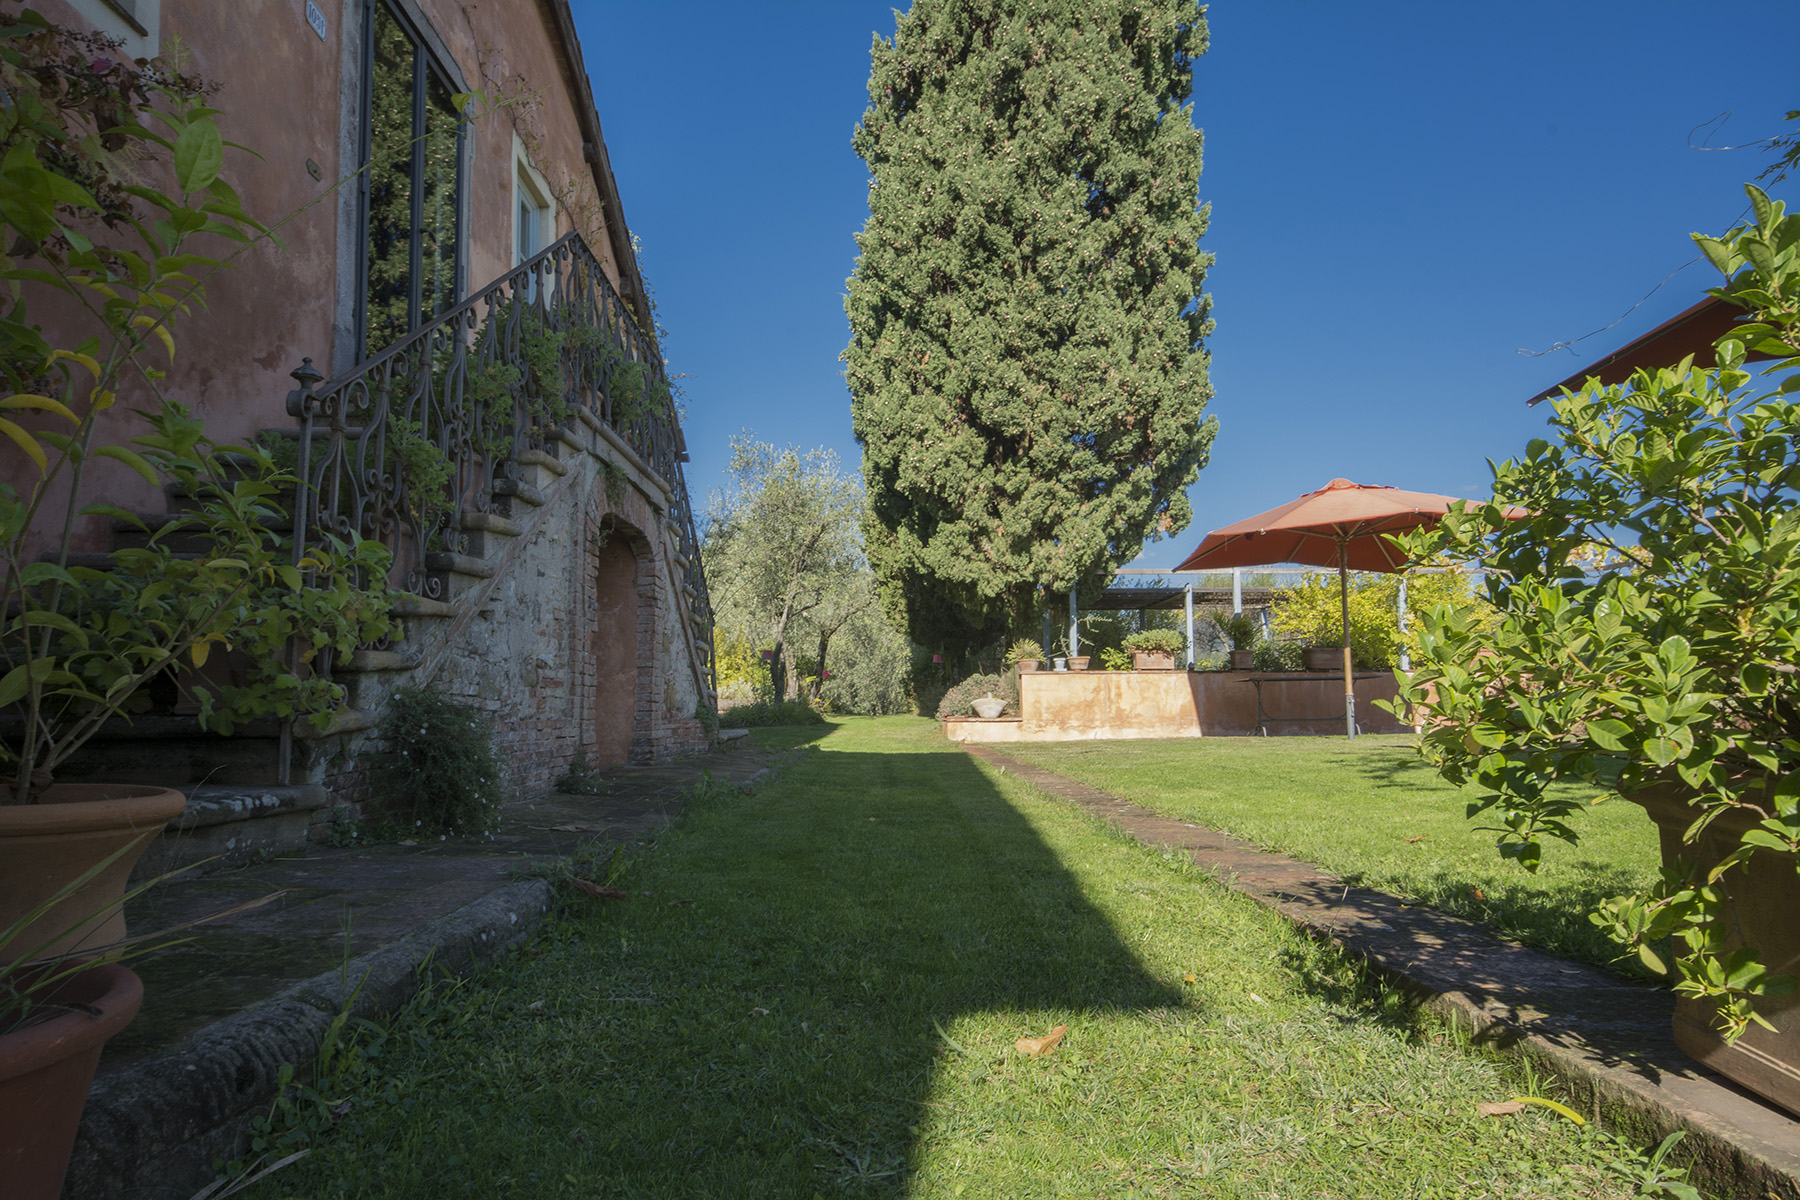 Additional photo for property listing at Stunning farm house with a unique garden in Lucca's countryside Via di Mutigliano Lucca, Lucca 55100 Italy